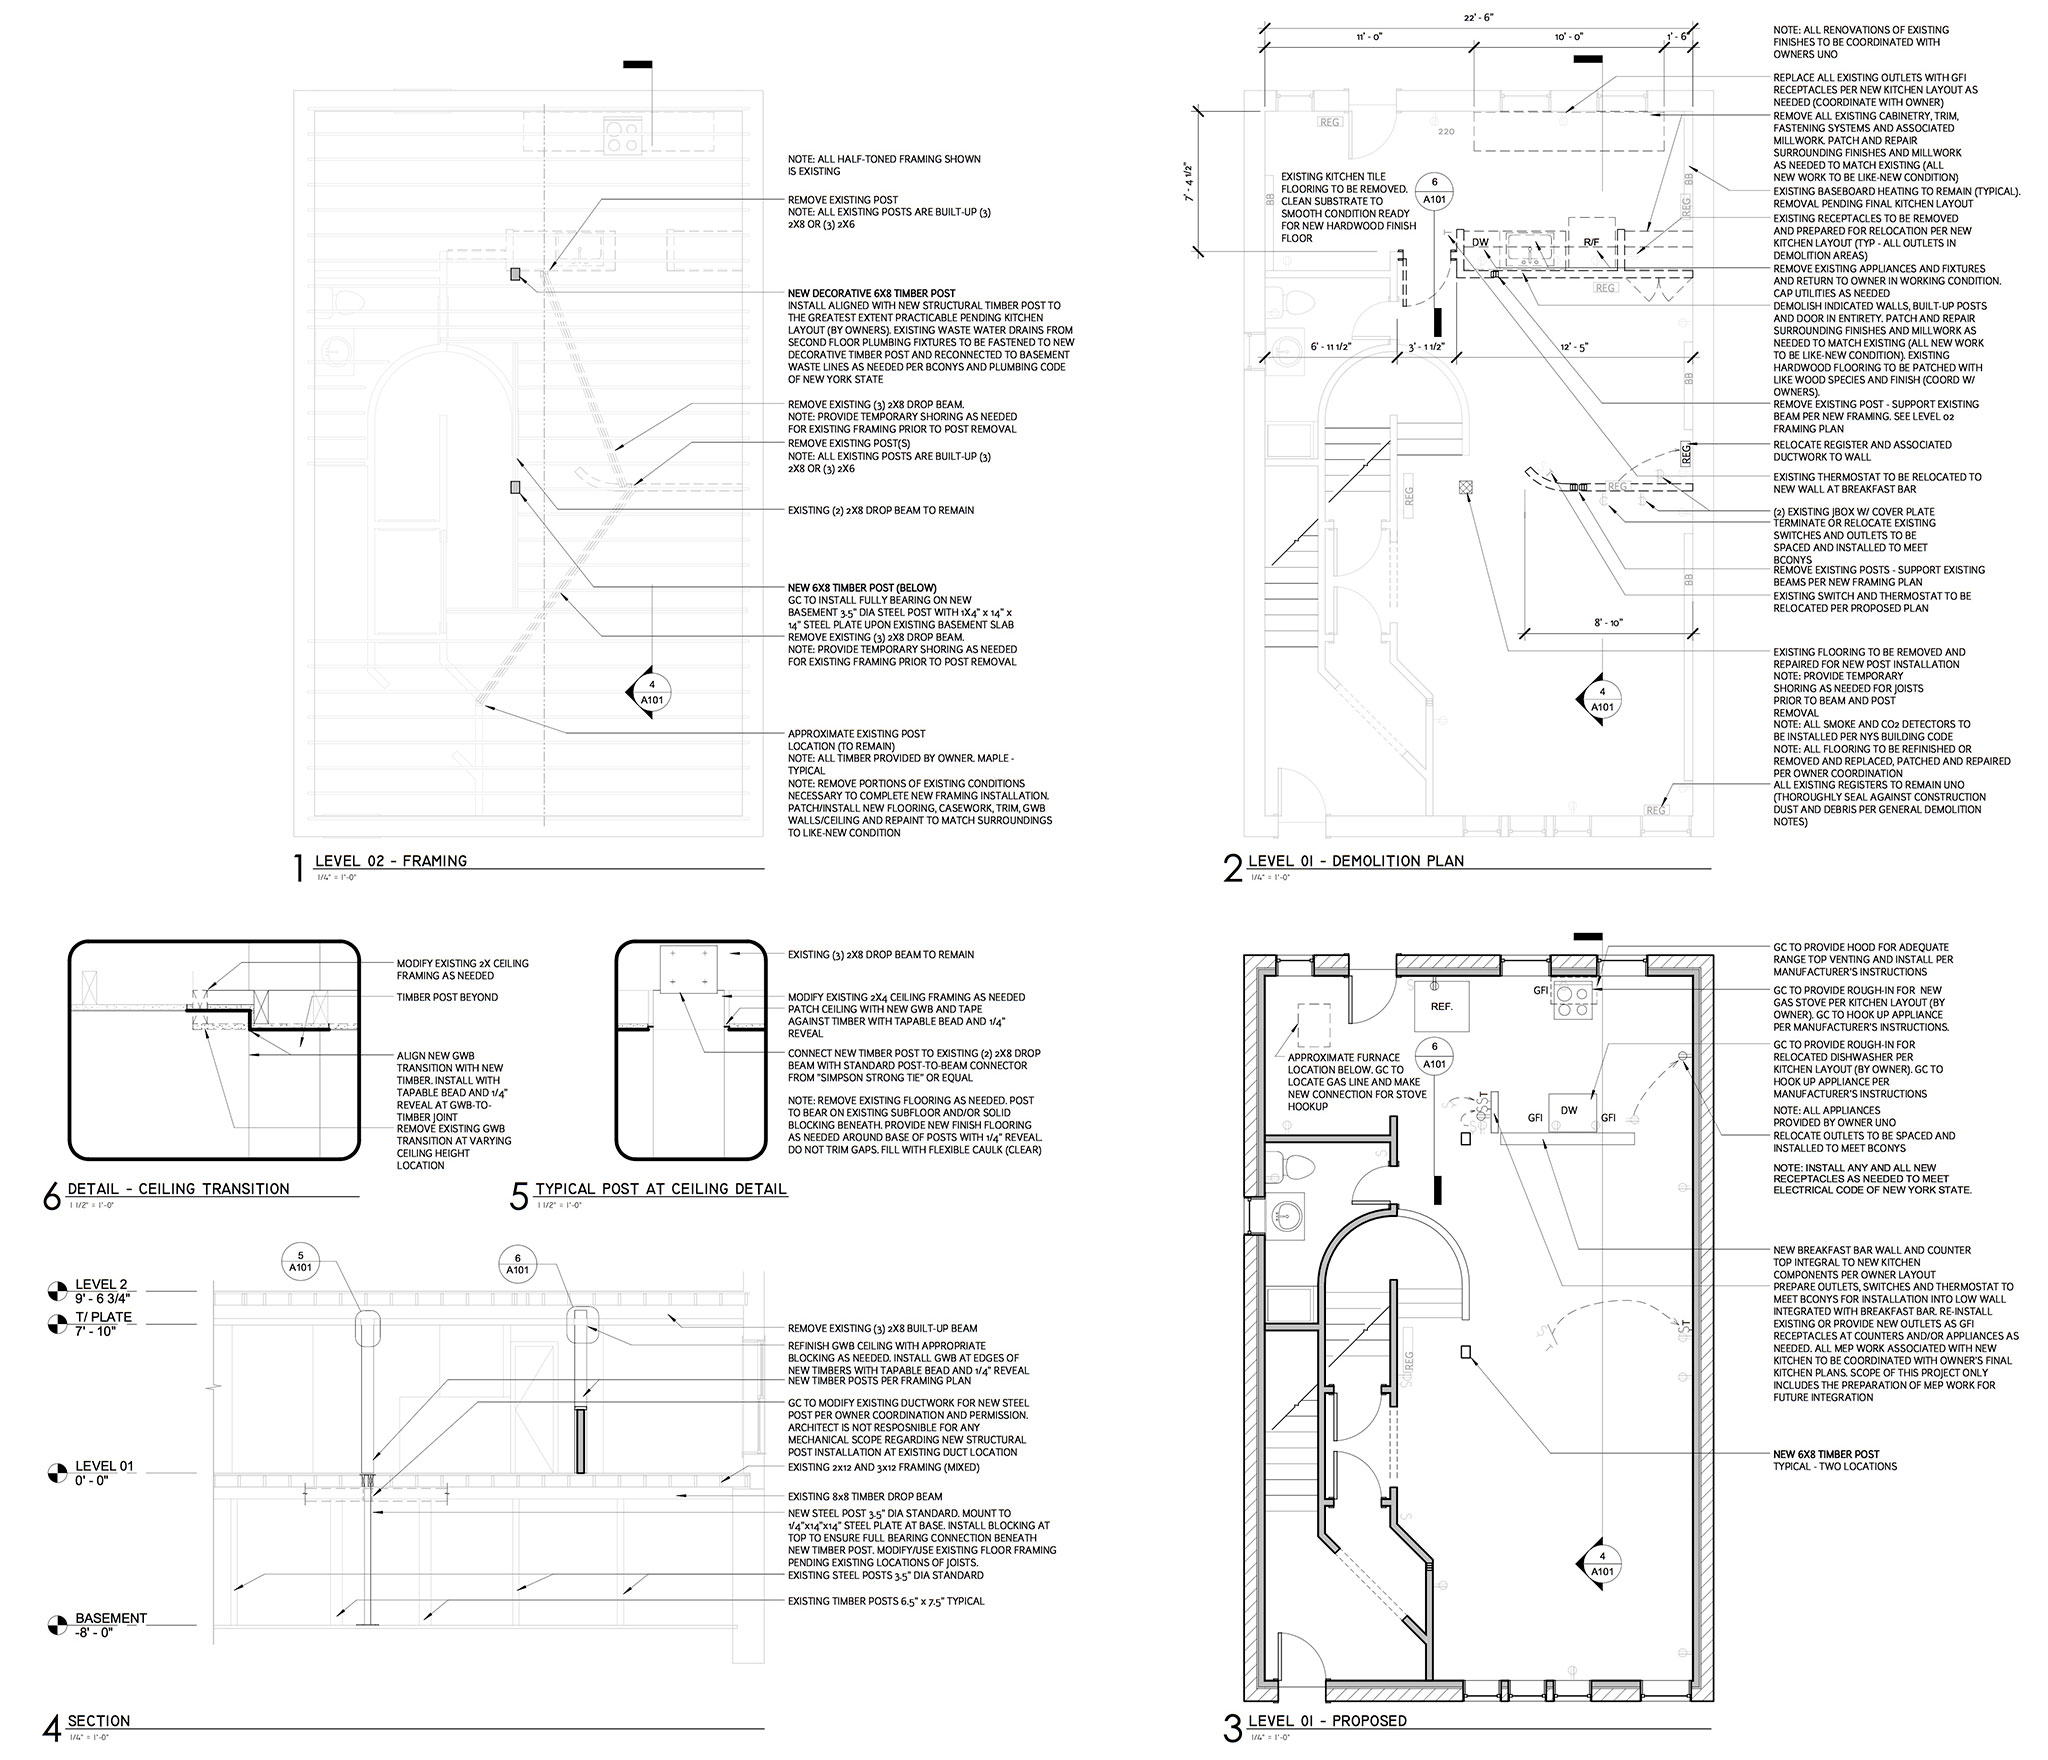 Albany ny architects design row house renovations leap for Architectural plans and permits